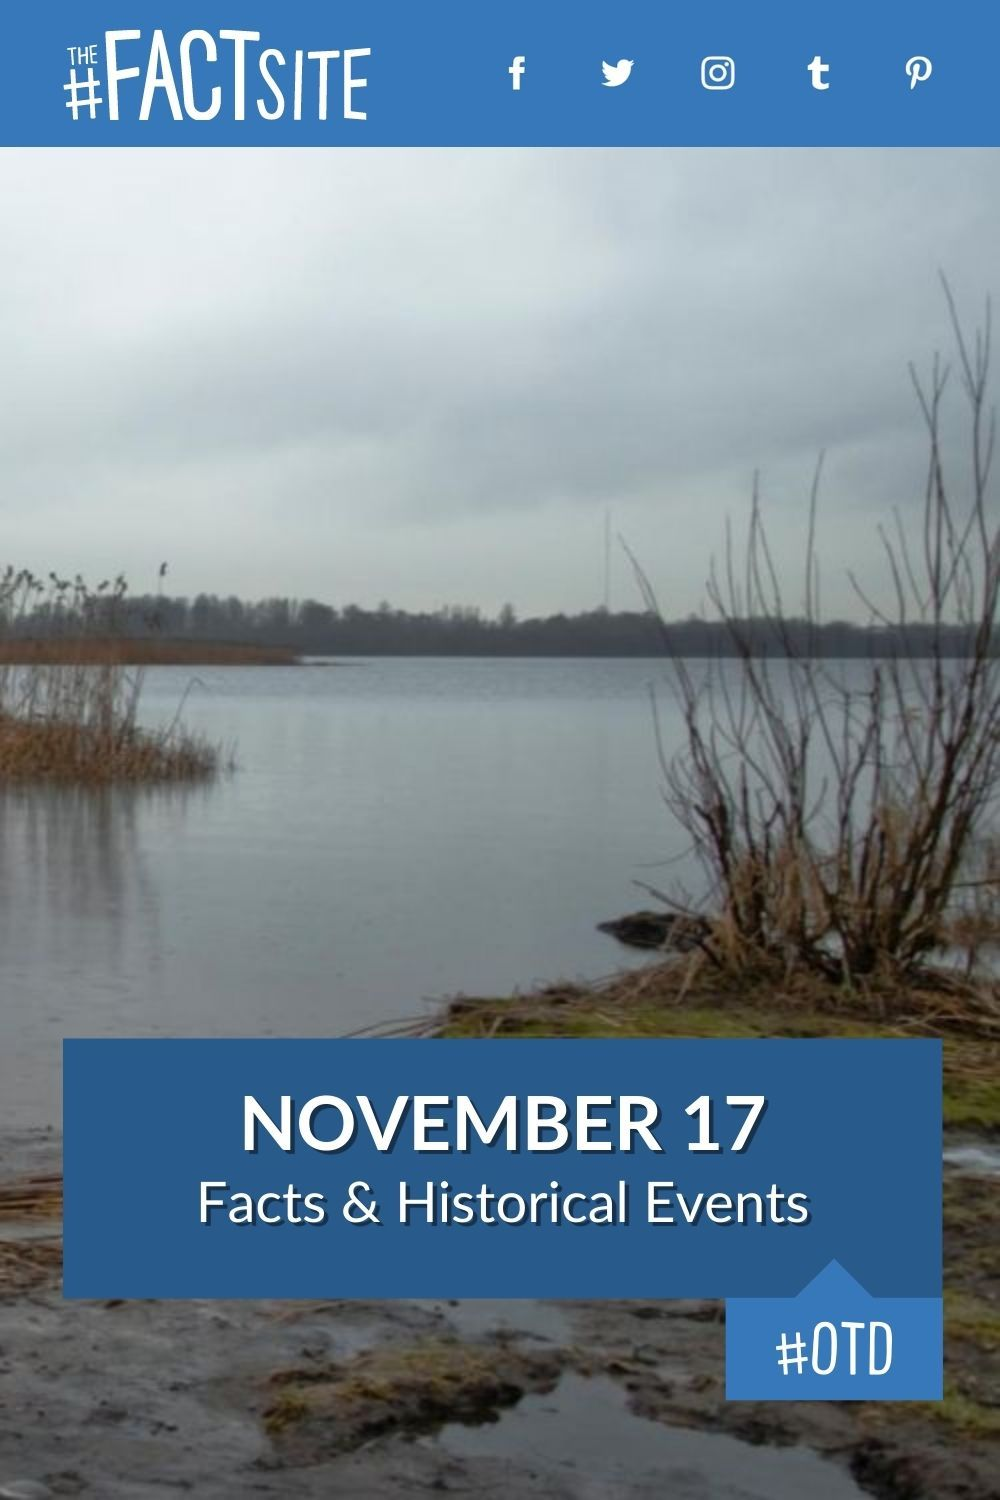 Facts & Historic Events That Happened on November 17